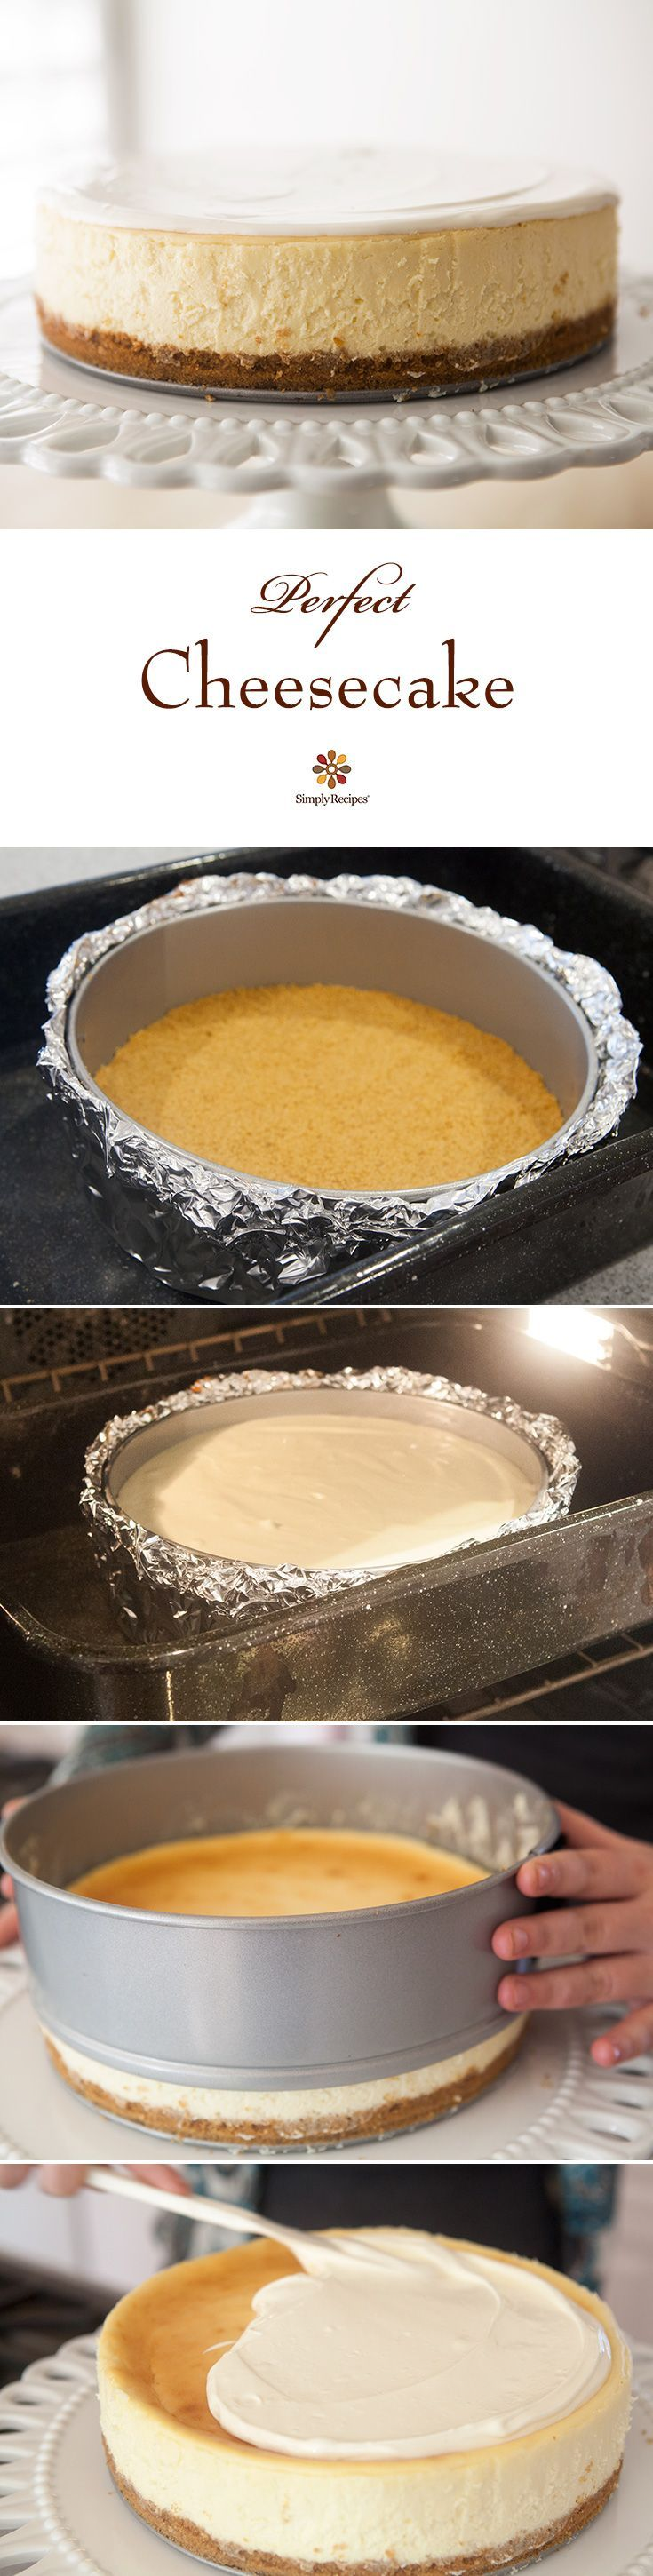 Perfect Cheesecake Beautiful Classic Cheesecake Tangy And Sweet With A Velvety Smooth